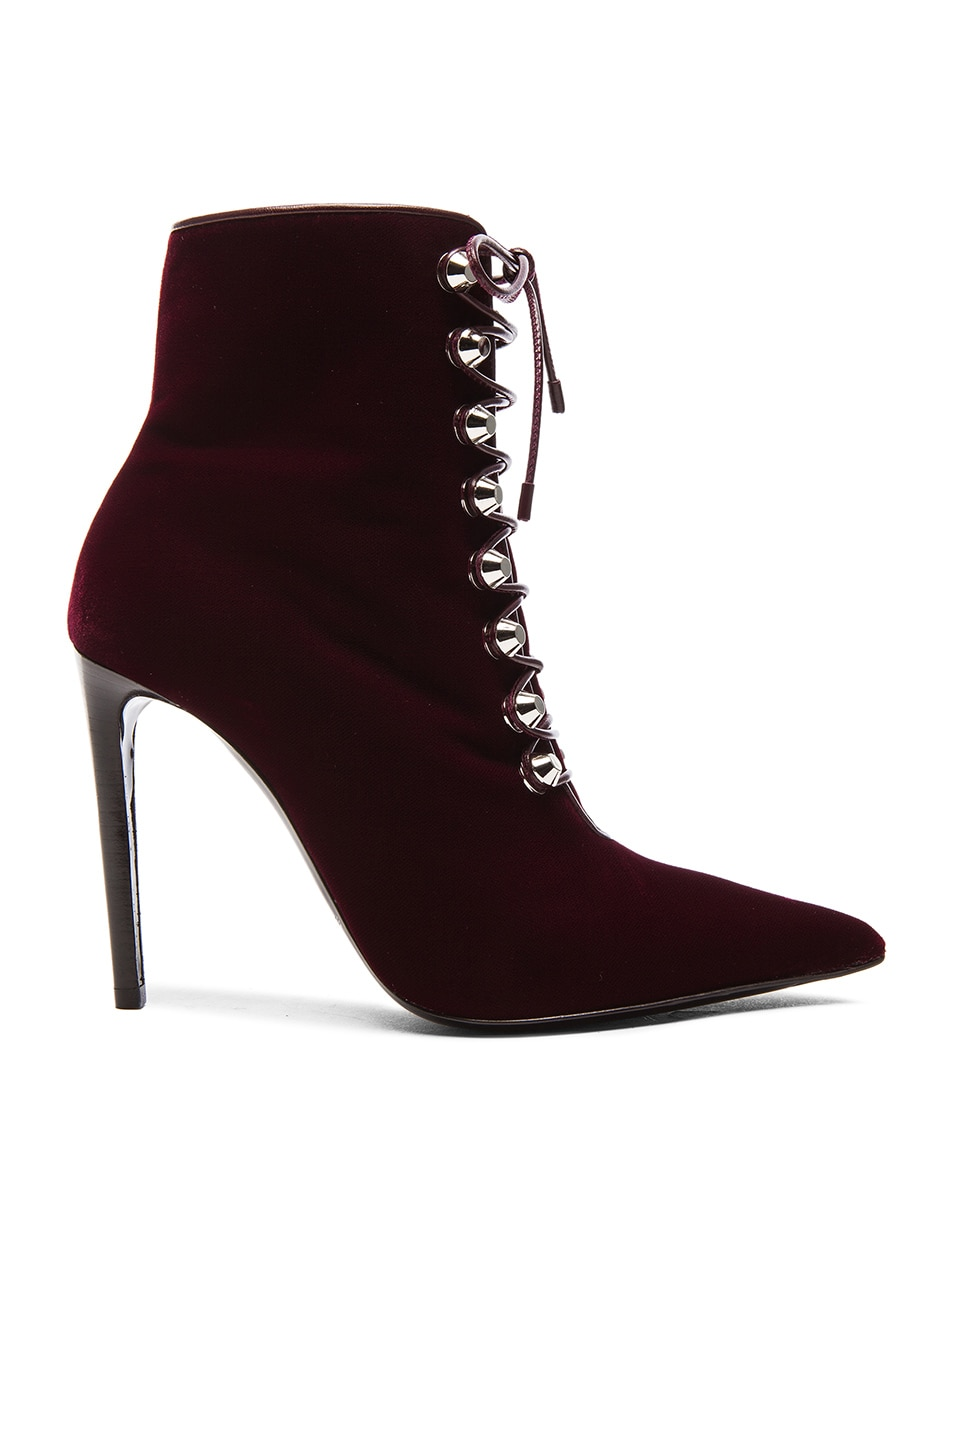 Image 1 of Balenciaga Velour Booties in Burgundy